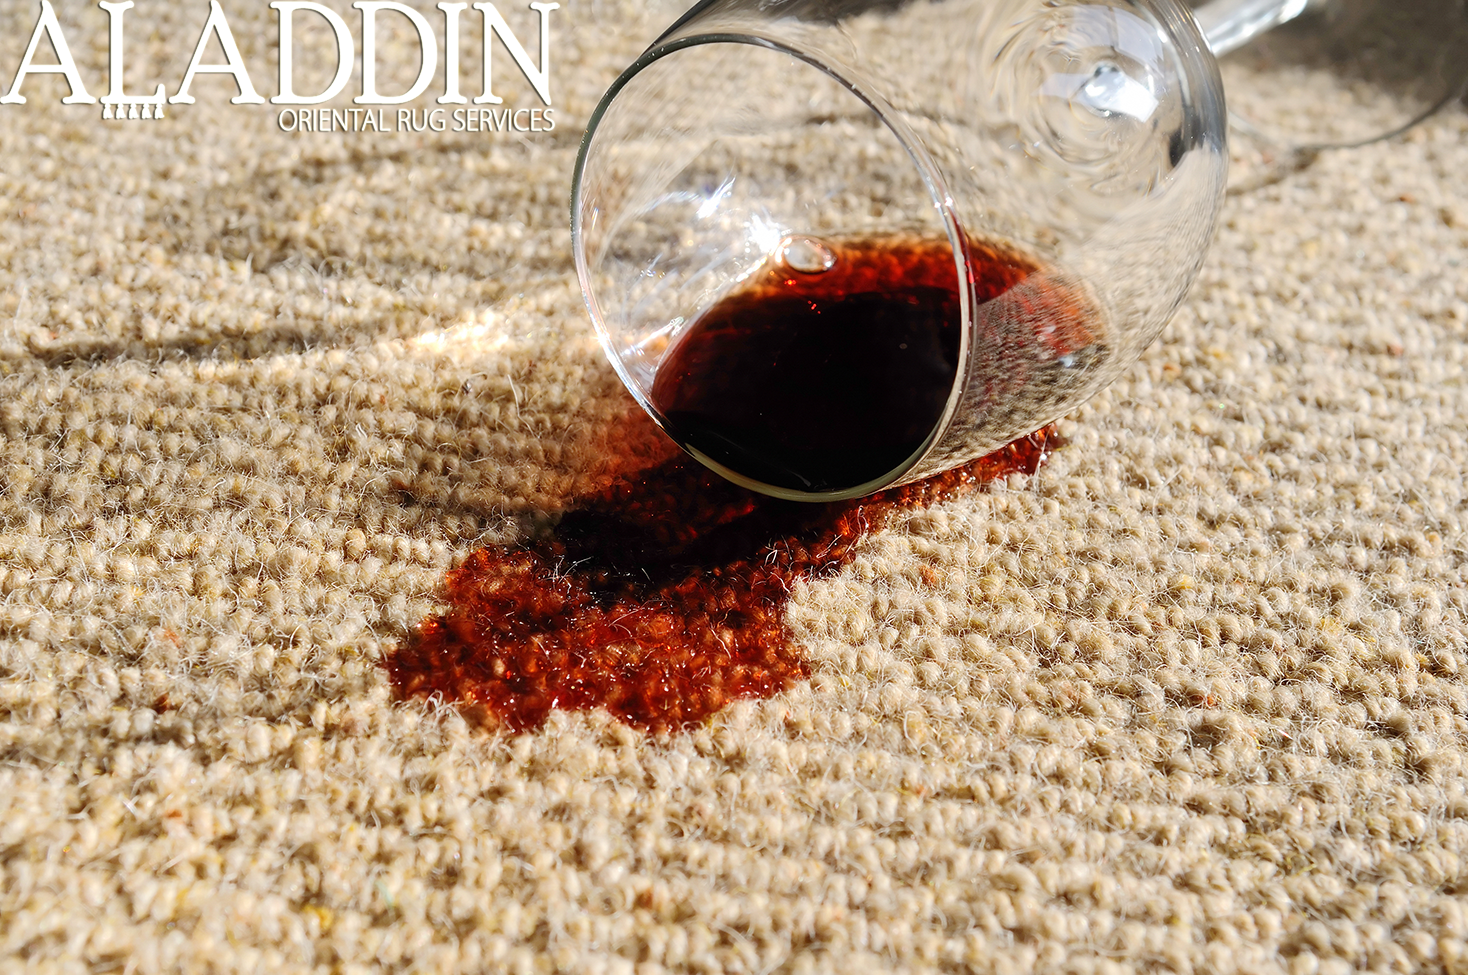 Stain Extraction:The rug cleaning aficionados on our staff can even handle pesky stains on your Oriental rug. If you're frustrated by the unwelcome presence of persistent staining on your otherwise pristine rug, you can depend on us to take on the stain extraction job and do it right. www.aladdinorientalrug.com (732) 456-5511 #nj #newjersey #stainremoval #orientalrugservices #njrugcleaning